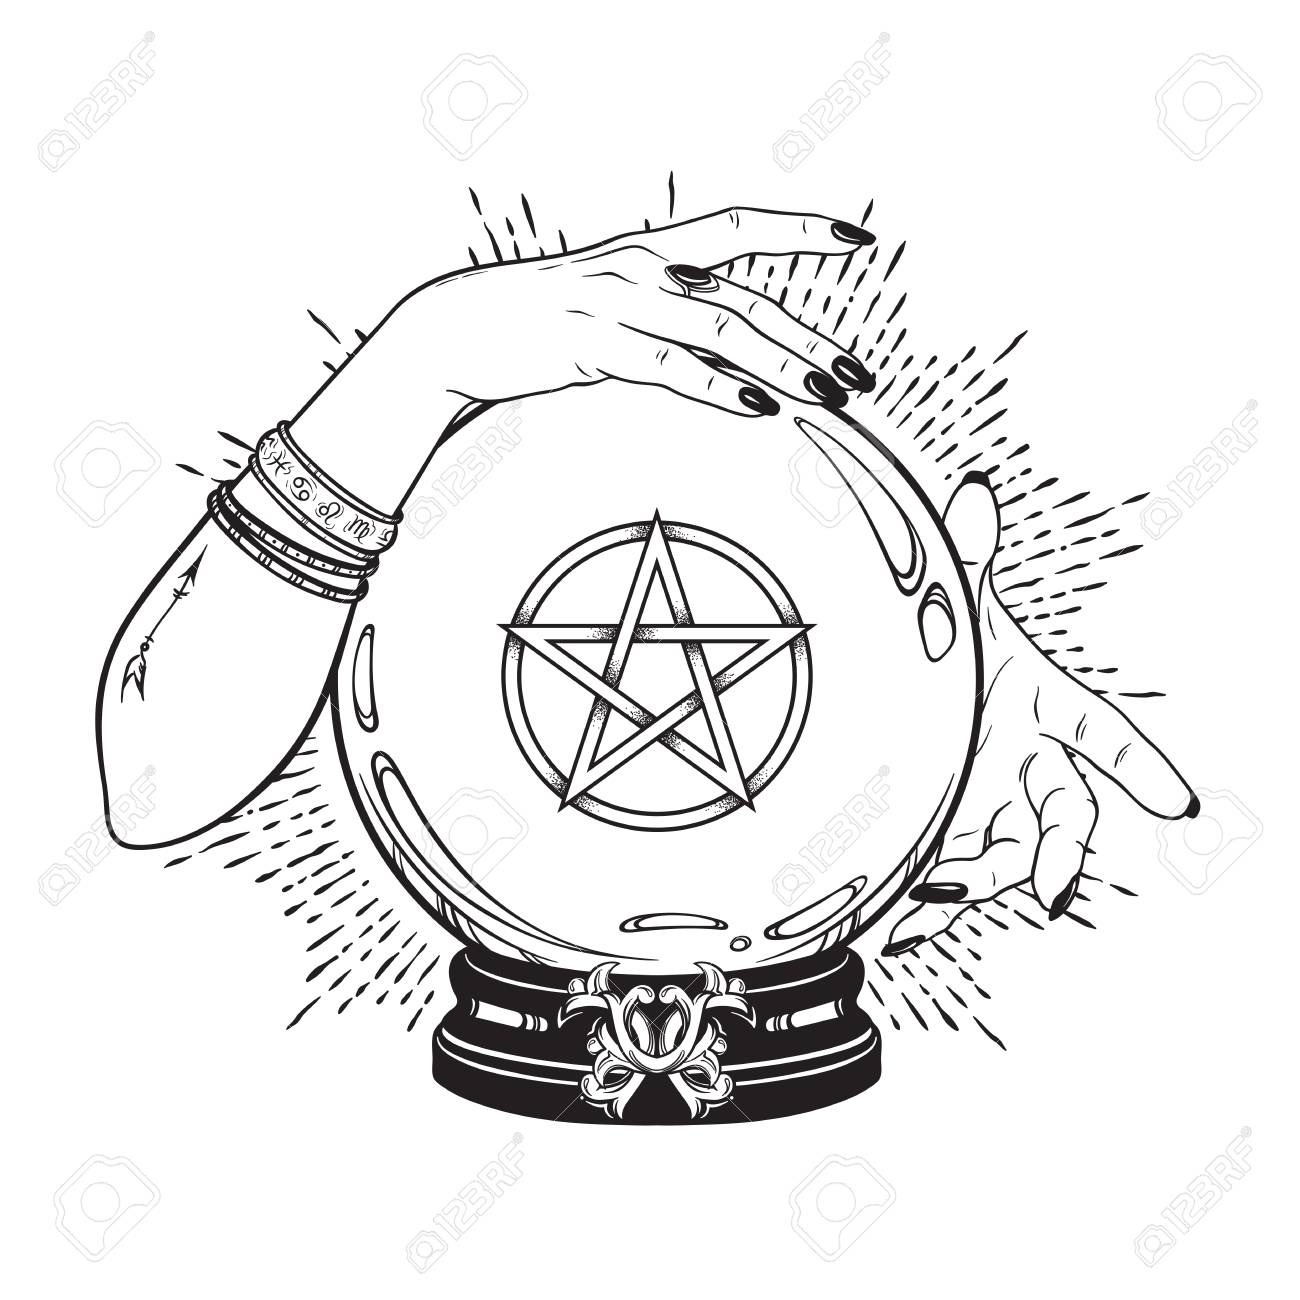 Hand Drawn Magic Crystal Ball With Pentagram Star In Hands Of